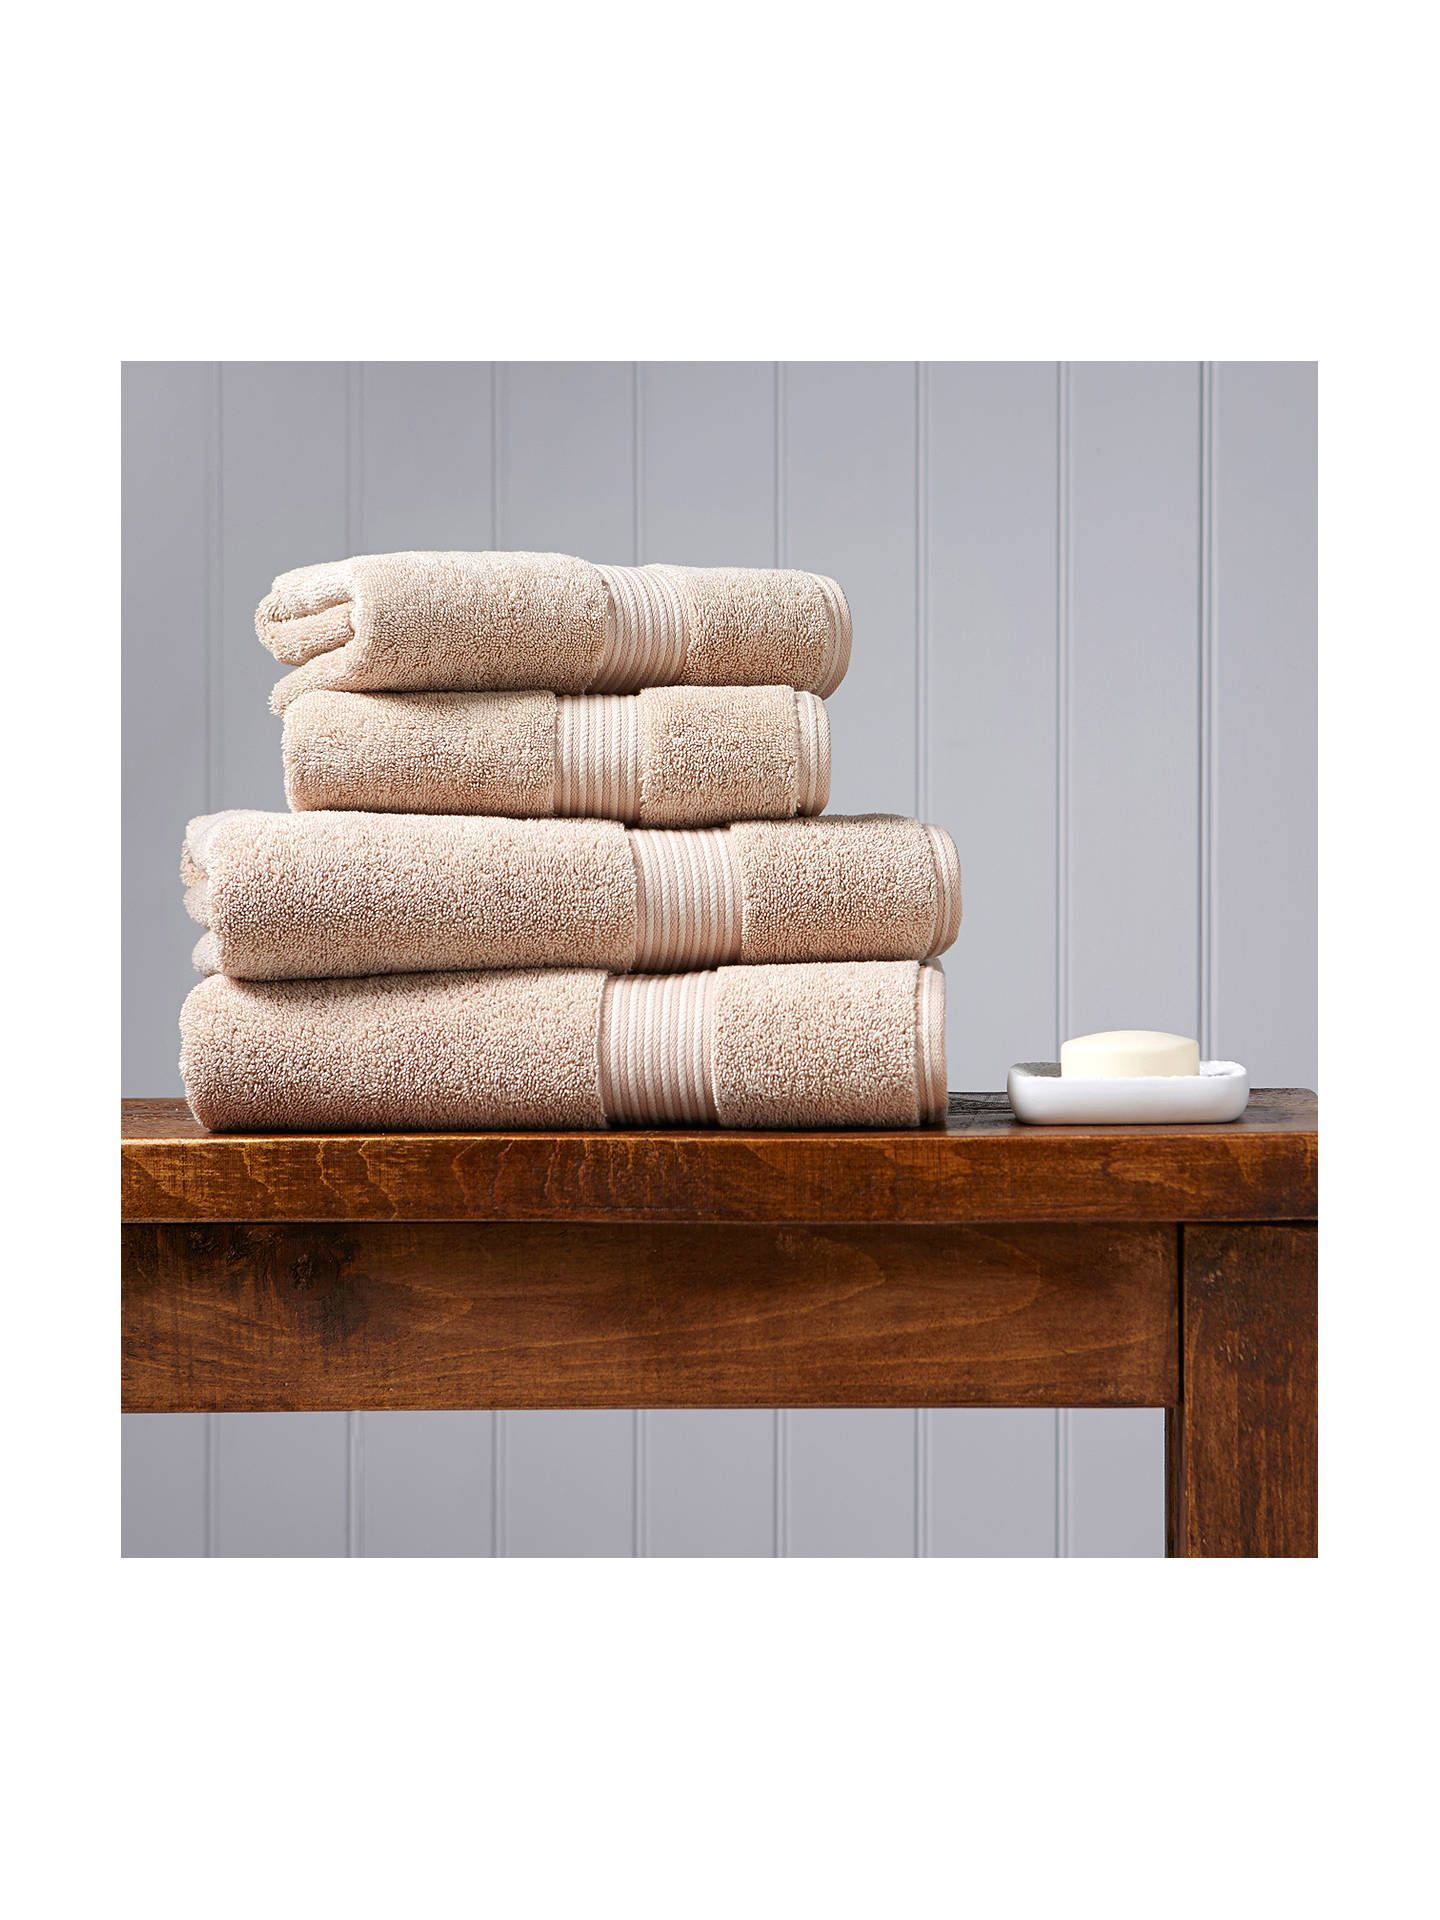 Christy Supreme Hygro Towels At John Lewis Partners Modern Bathroom Design Luxury Bath Mats